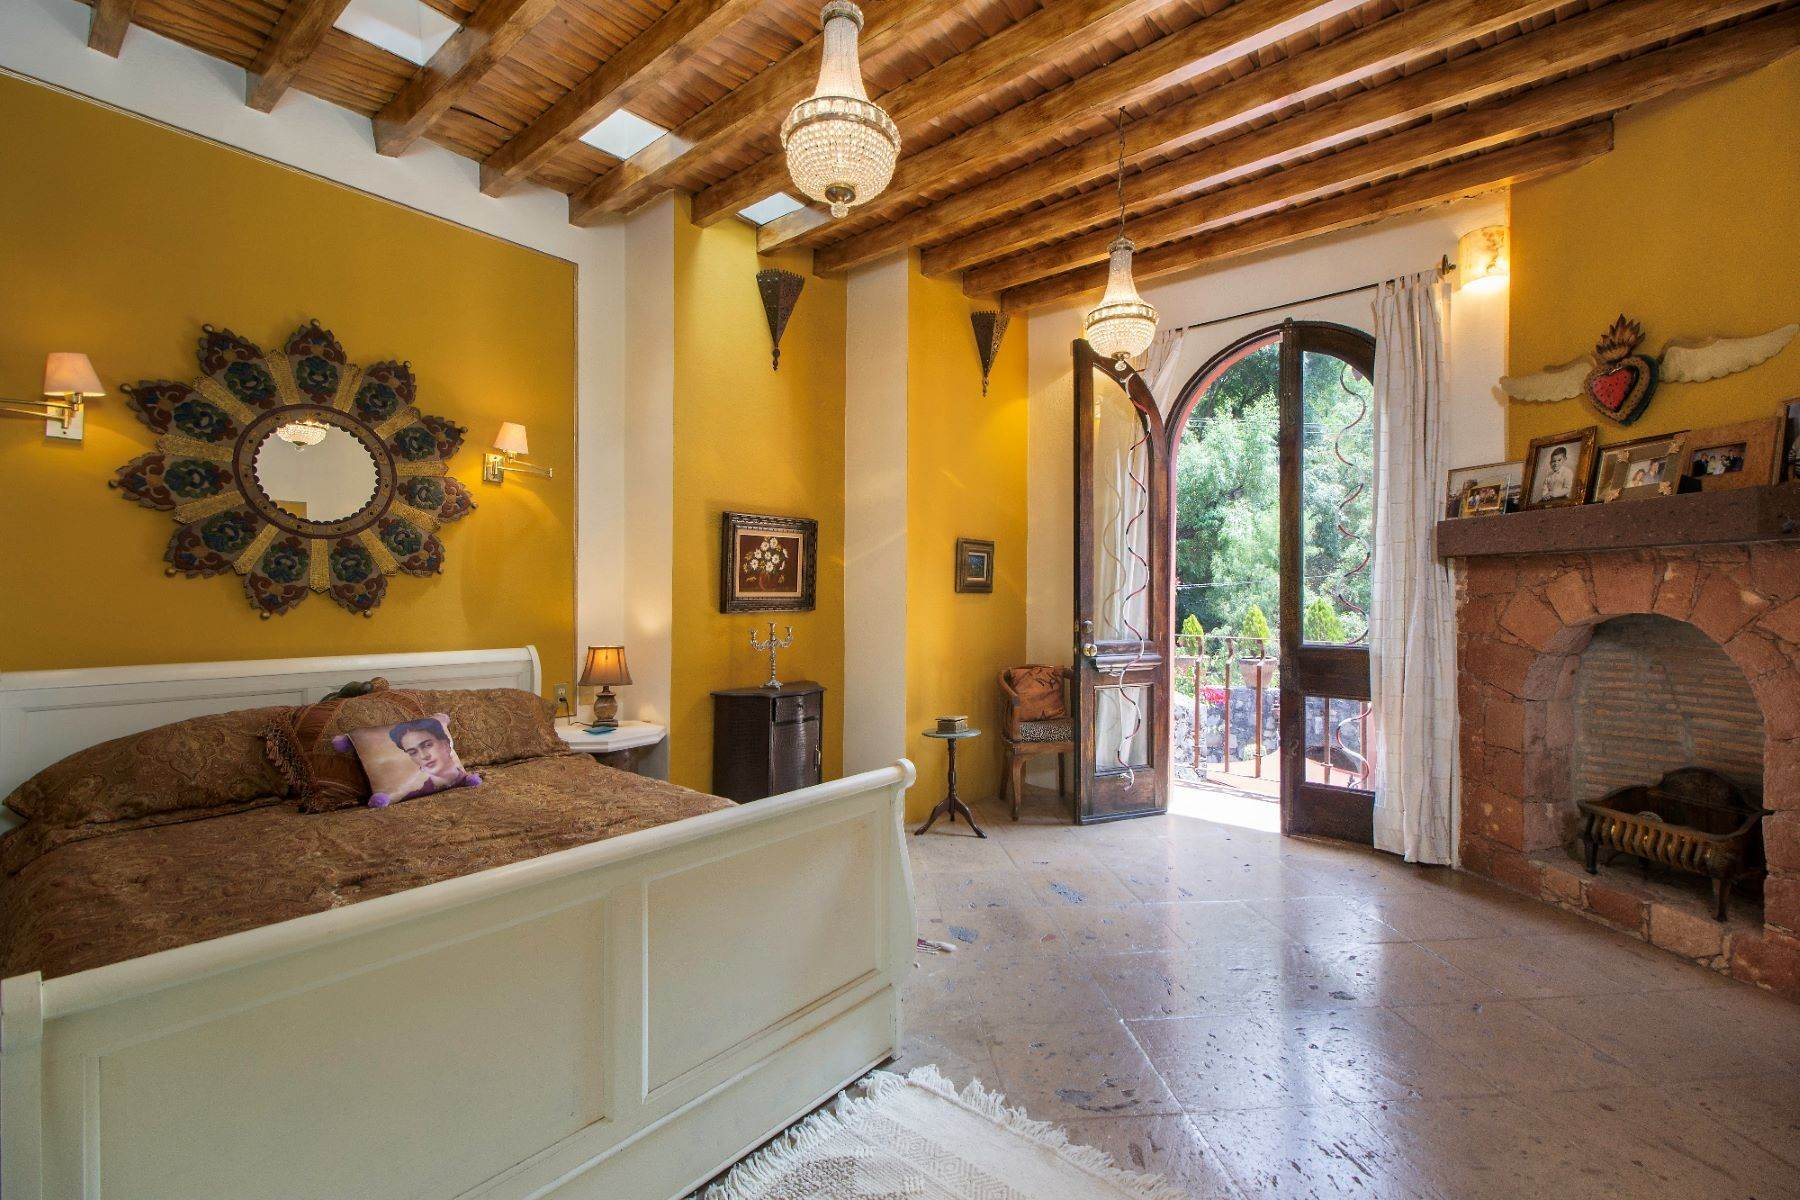 Single Family Homes for Sale at Casa Culebra Santo Domingo 68A, Centro San Miguel De Allende, Guanajuato 37700 Mexico